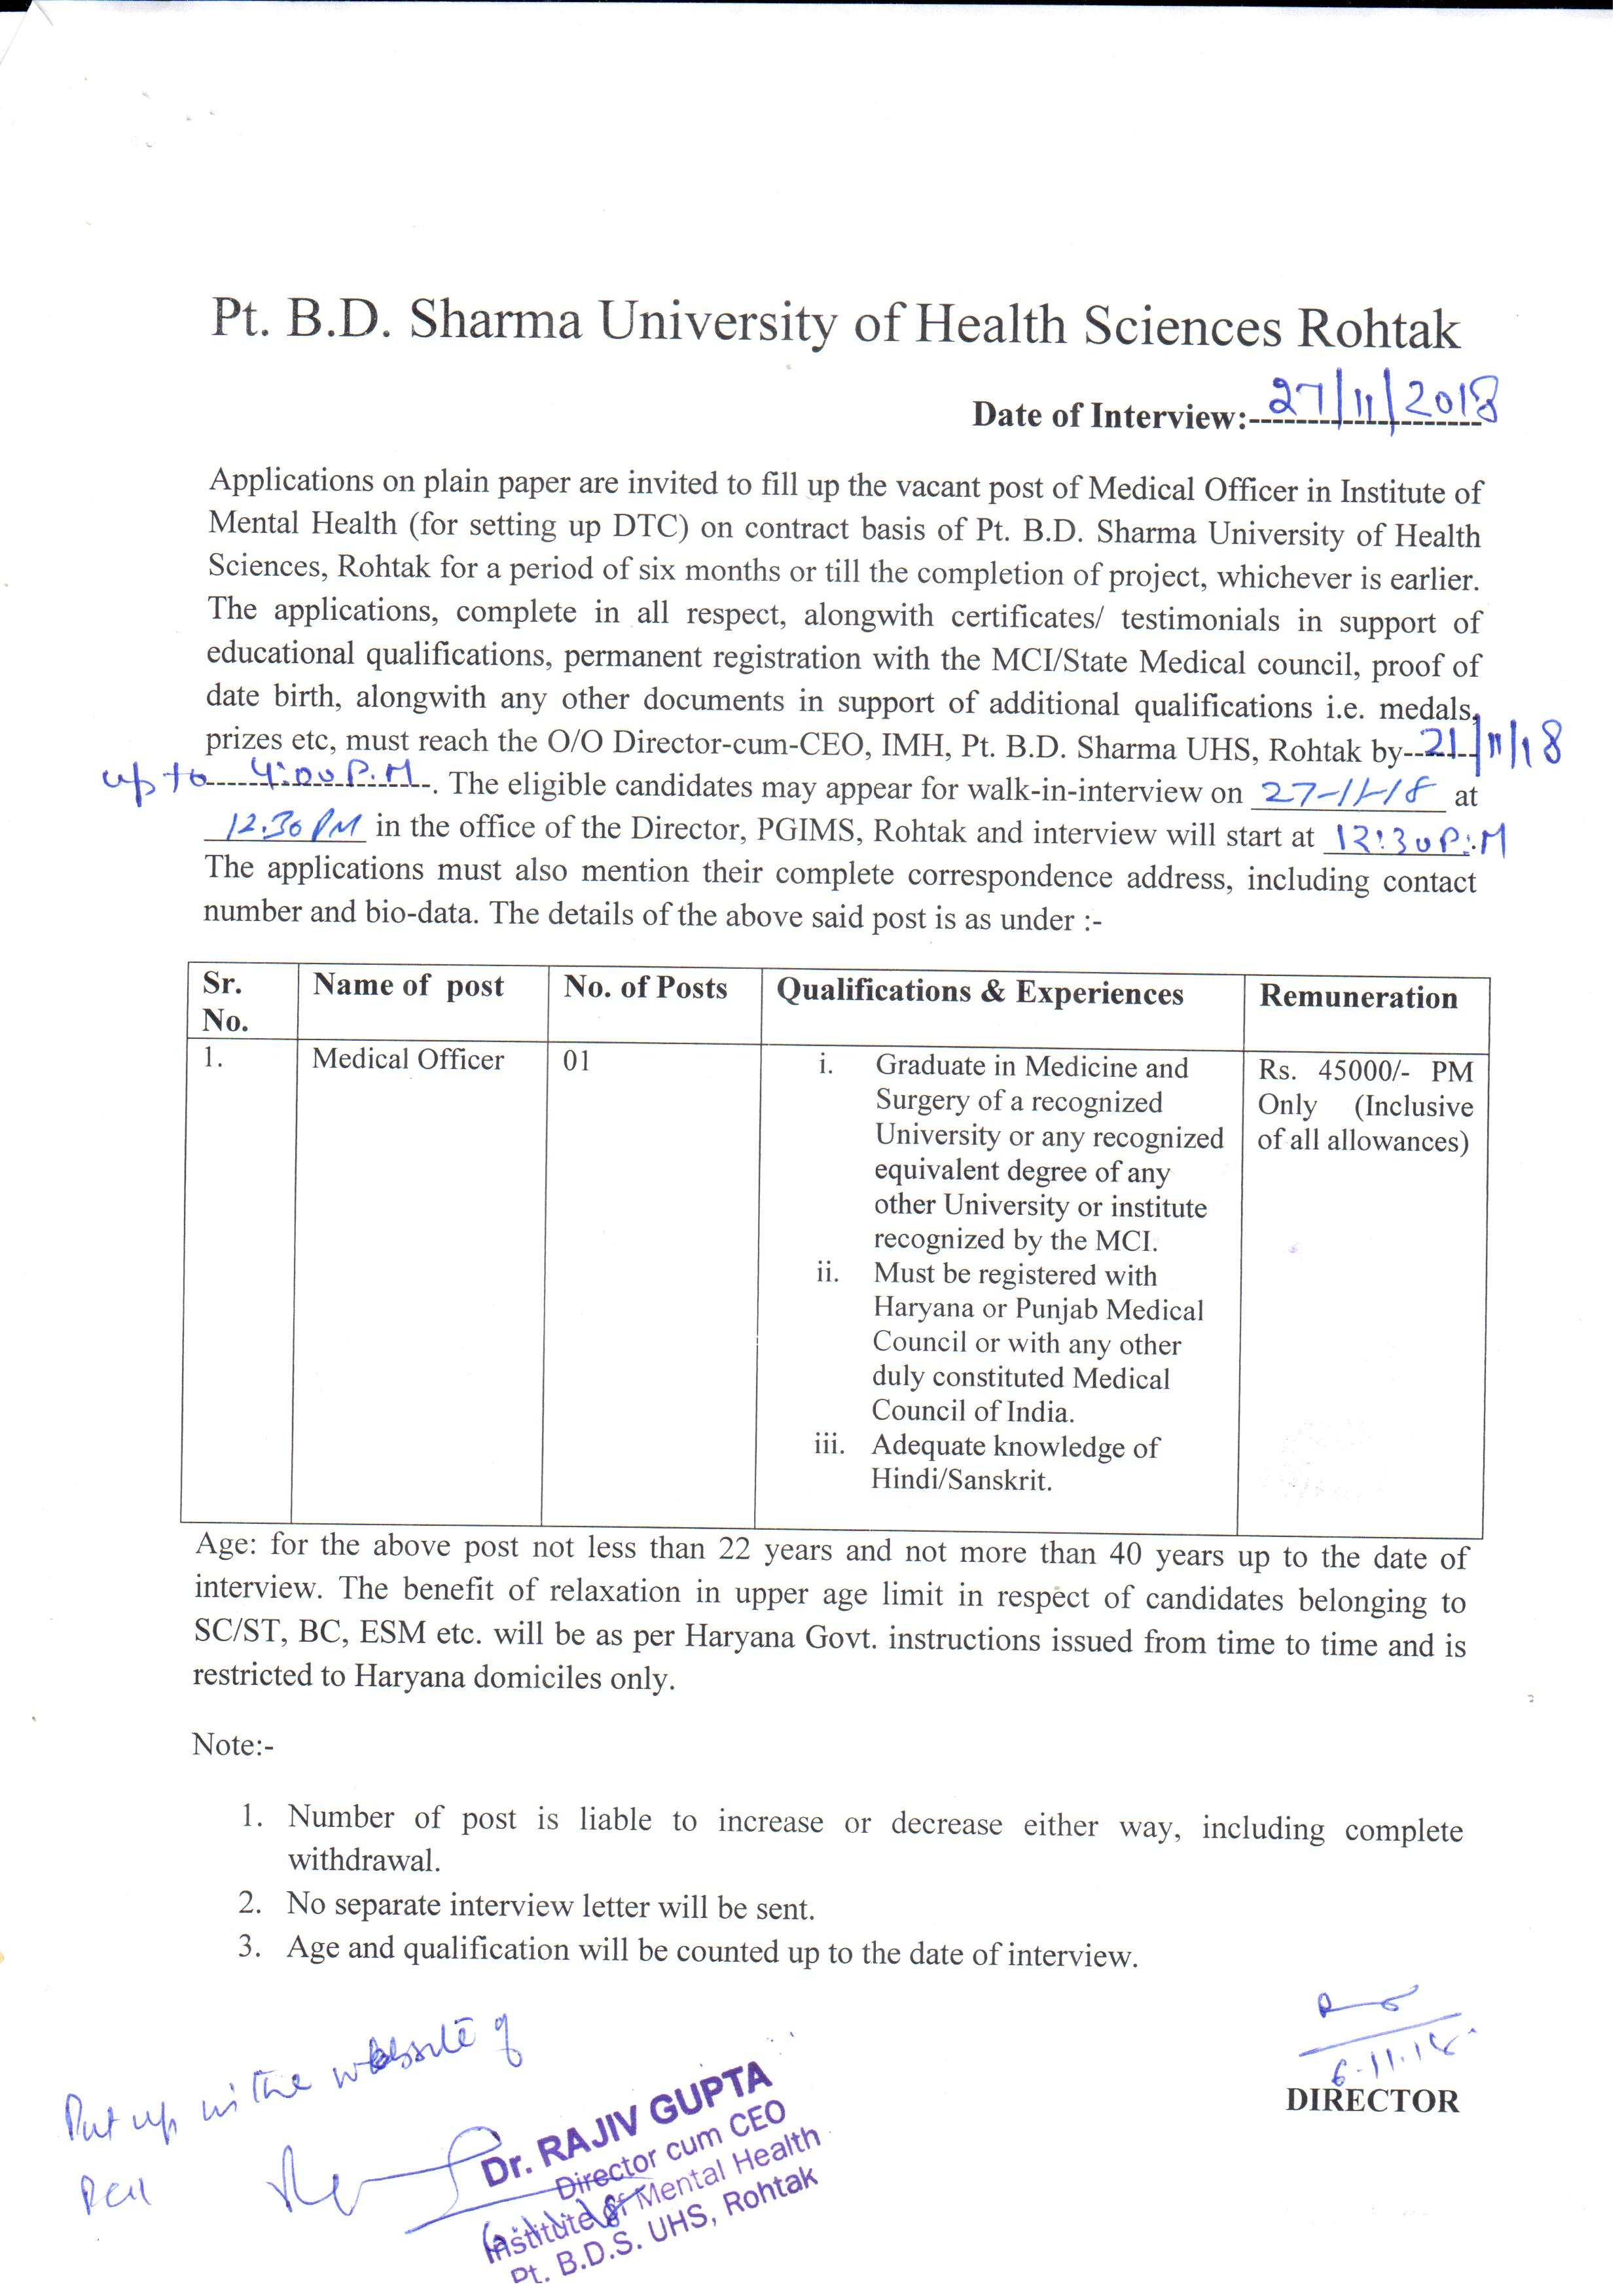 application on plain paper are invited to fill up the vacant post of medical officer in institute of mental health for setting up dtc on contract basis of